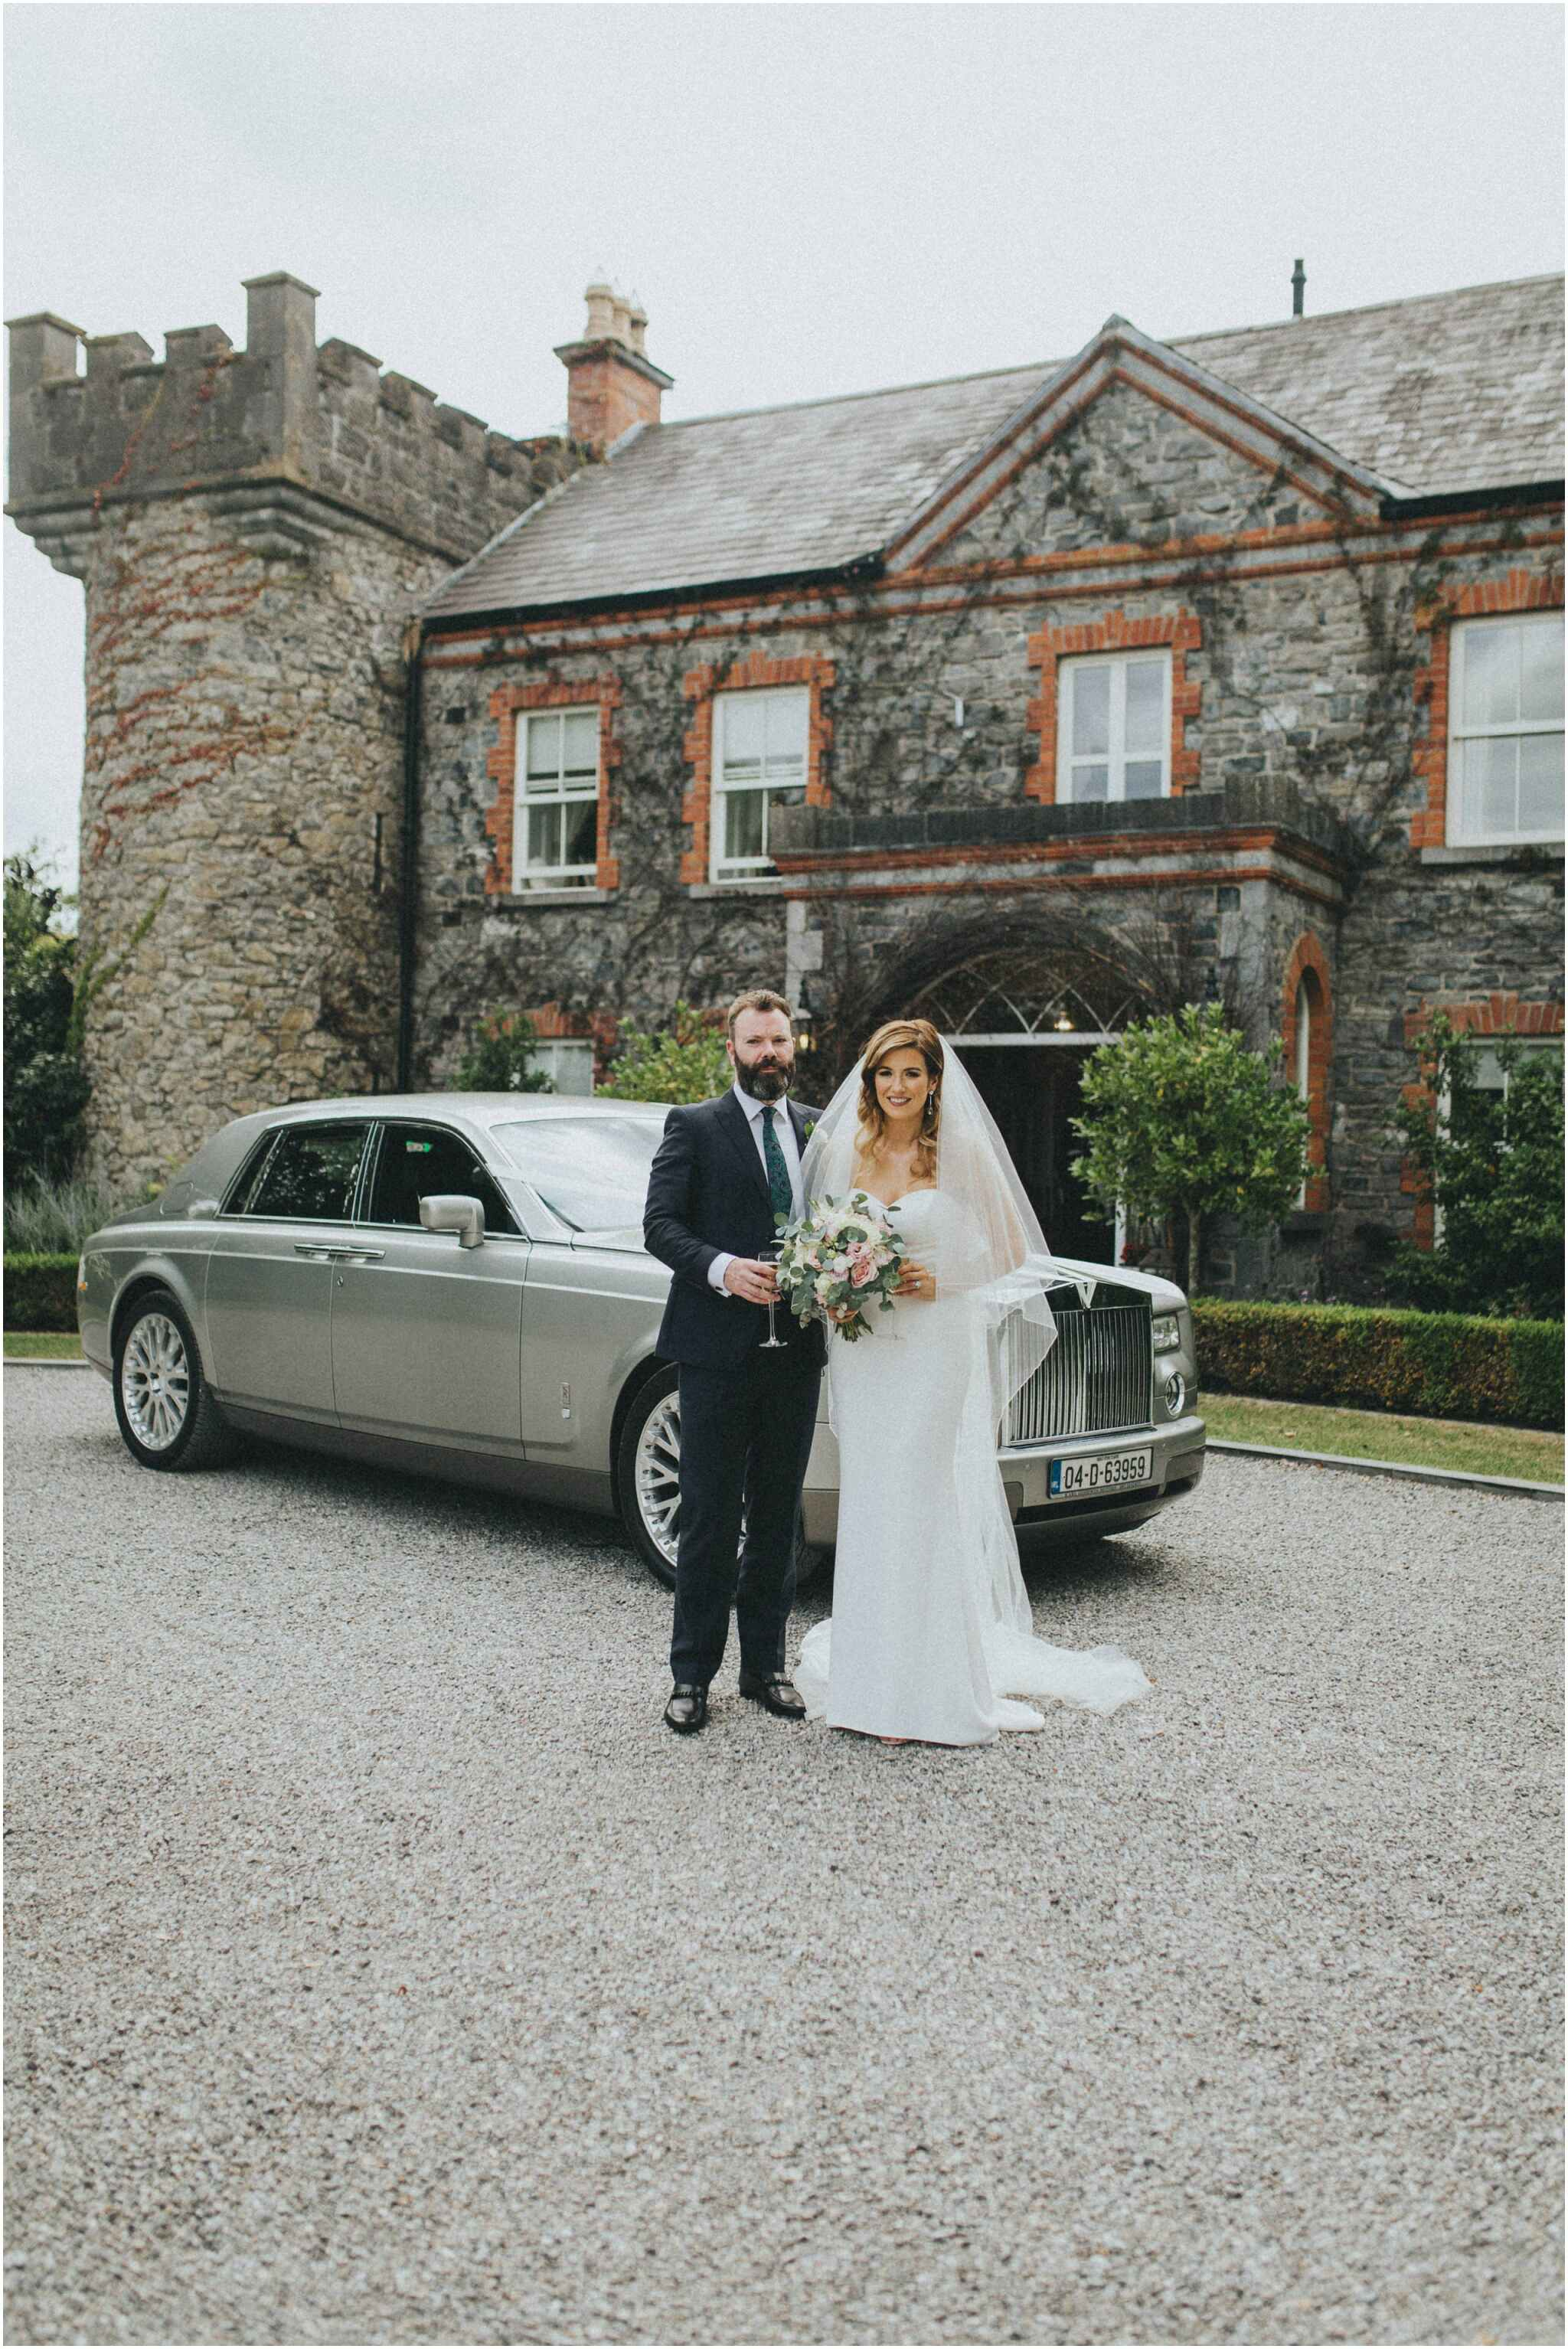 ballymagarvey village wedding 00077 - Fun and Relaxed wedding and elopement photography in Ireland, perfect for adventurous and outdoorsy couples